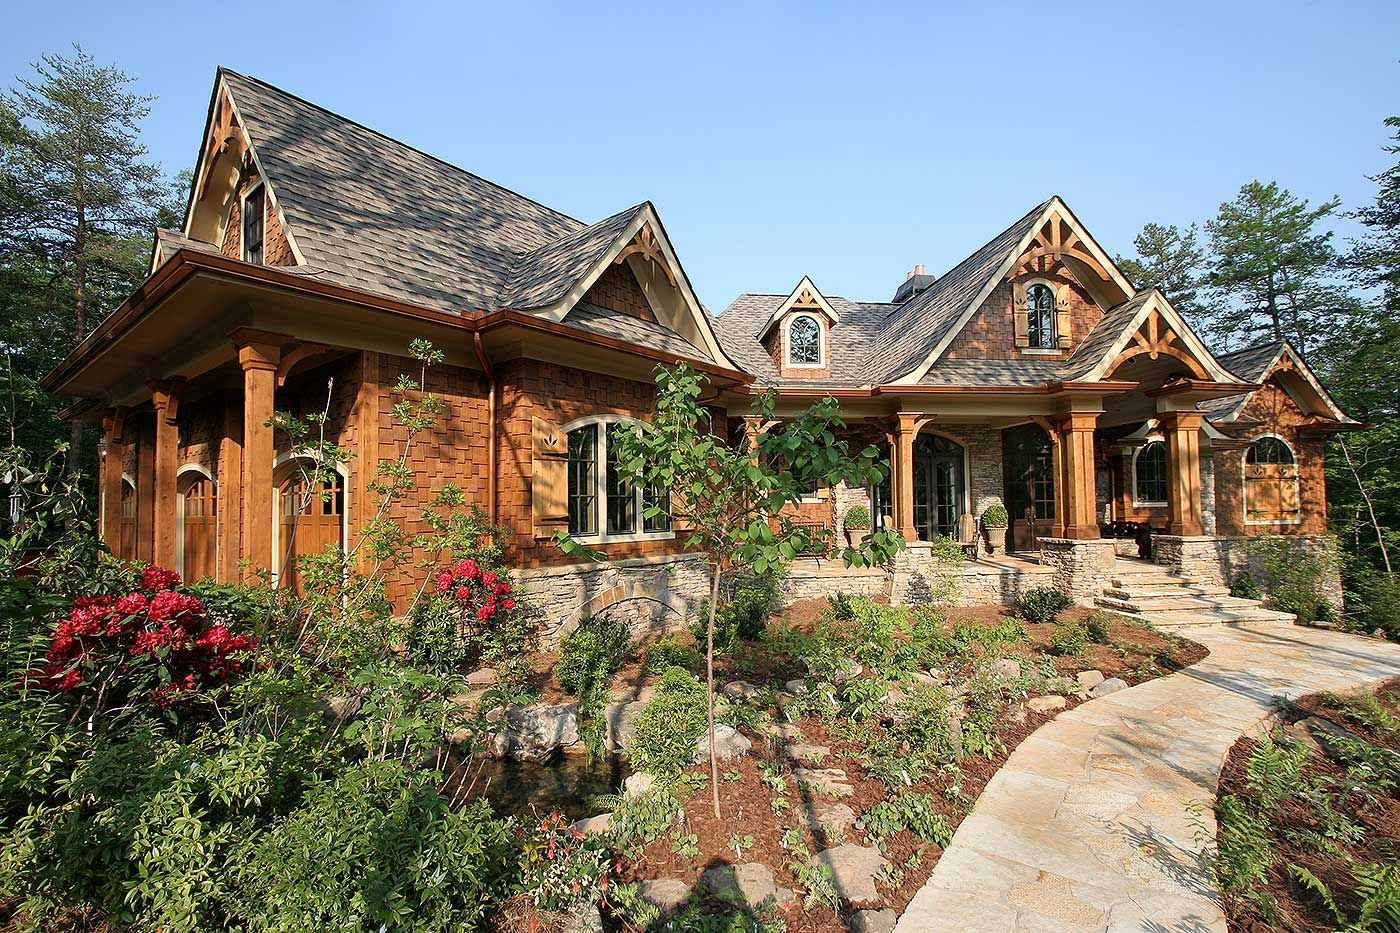 house plan 65862 at familyhomeplans com like the floor plan but house plan 65862 at familyhomeplans com like the floor plan but not so much the exterior home ideas pinterest tuscan house plans tuscan house and